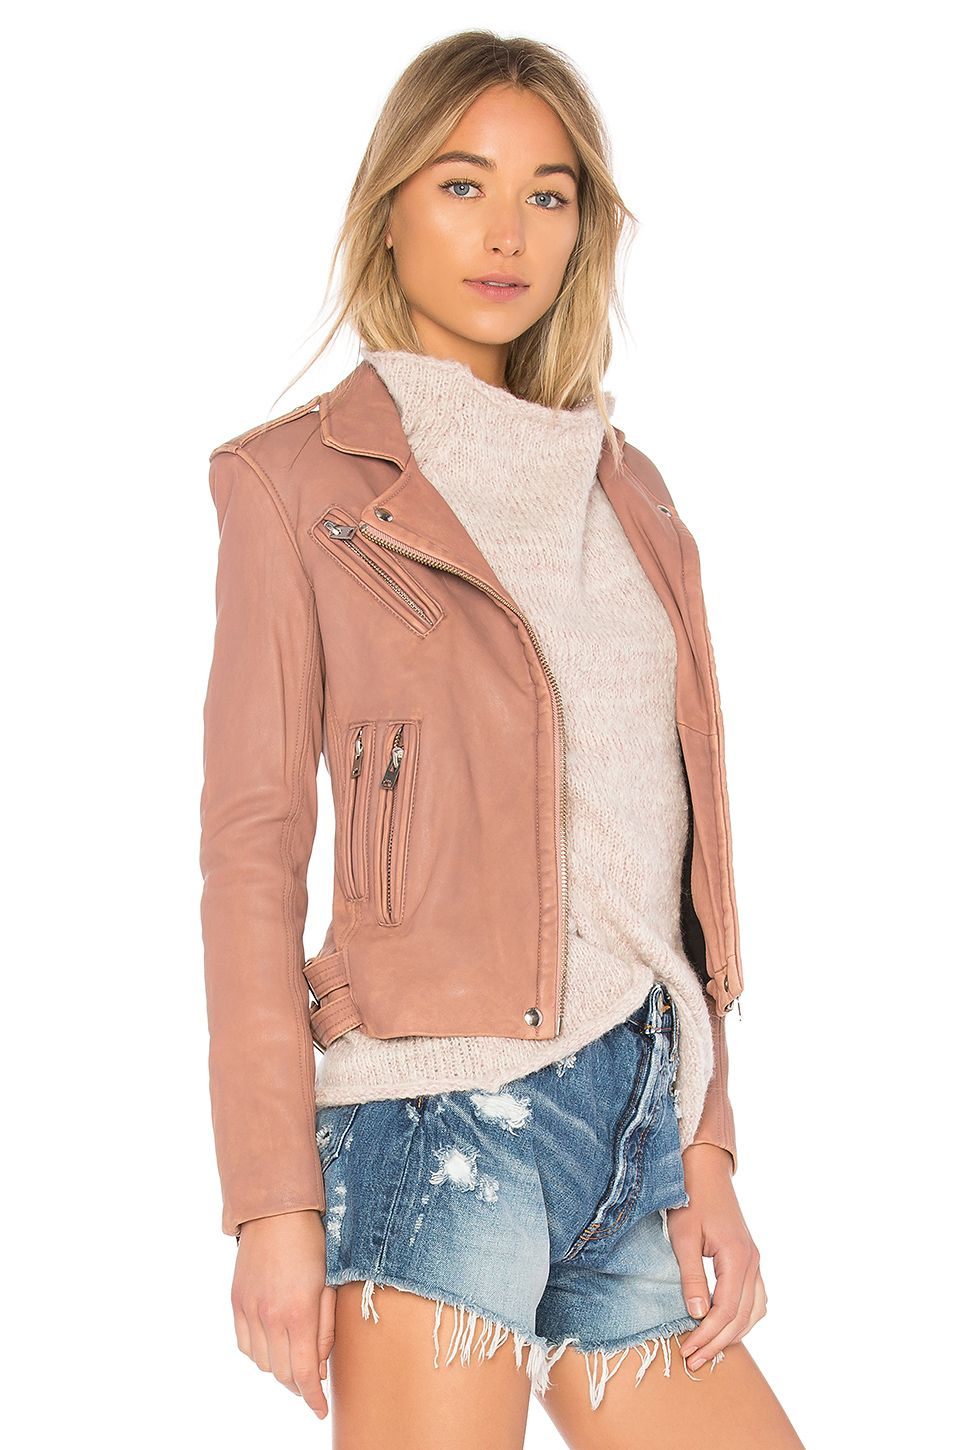 Iro Han Leather Jacket In Old Pink Revolve Leather Jacket Jackets Revolve Clothing [ 1450 x 960 Pixel ]